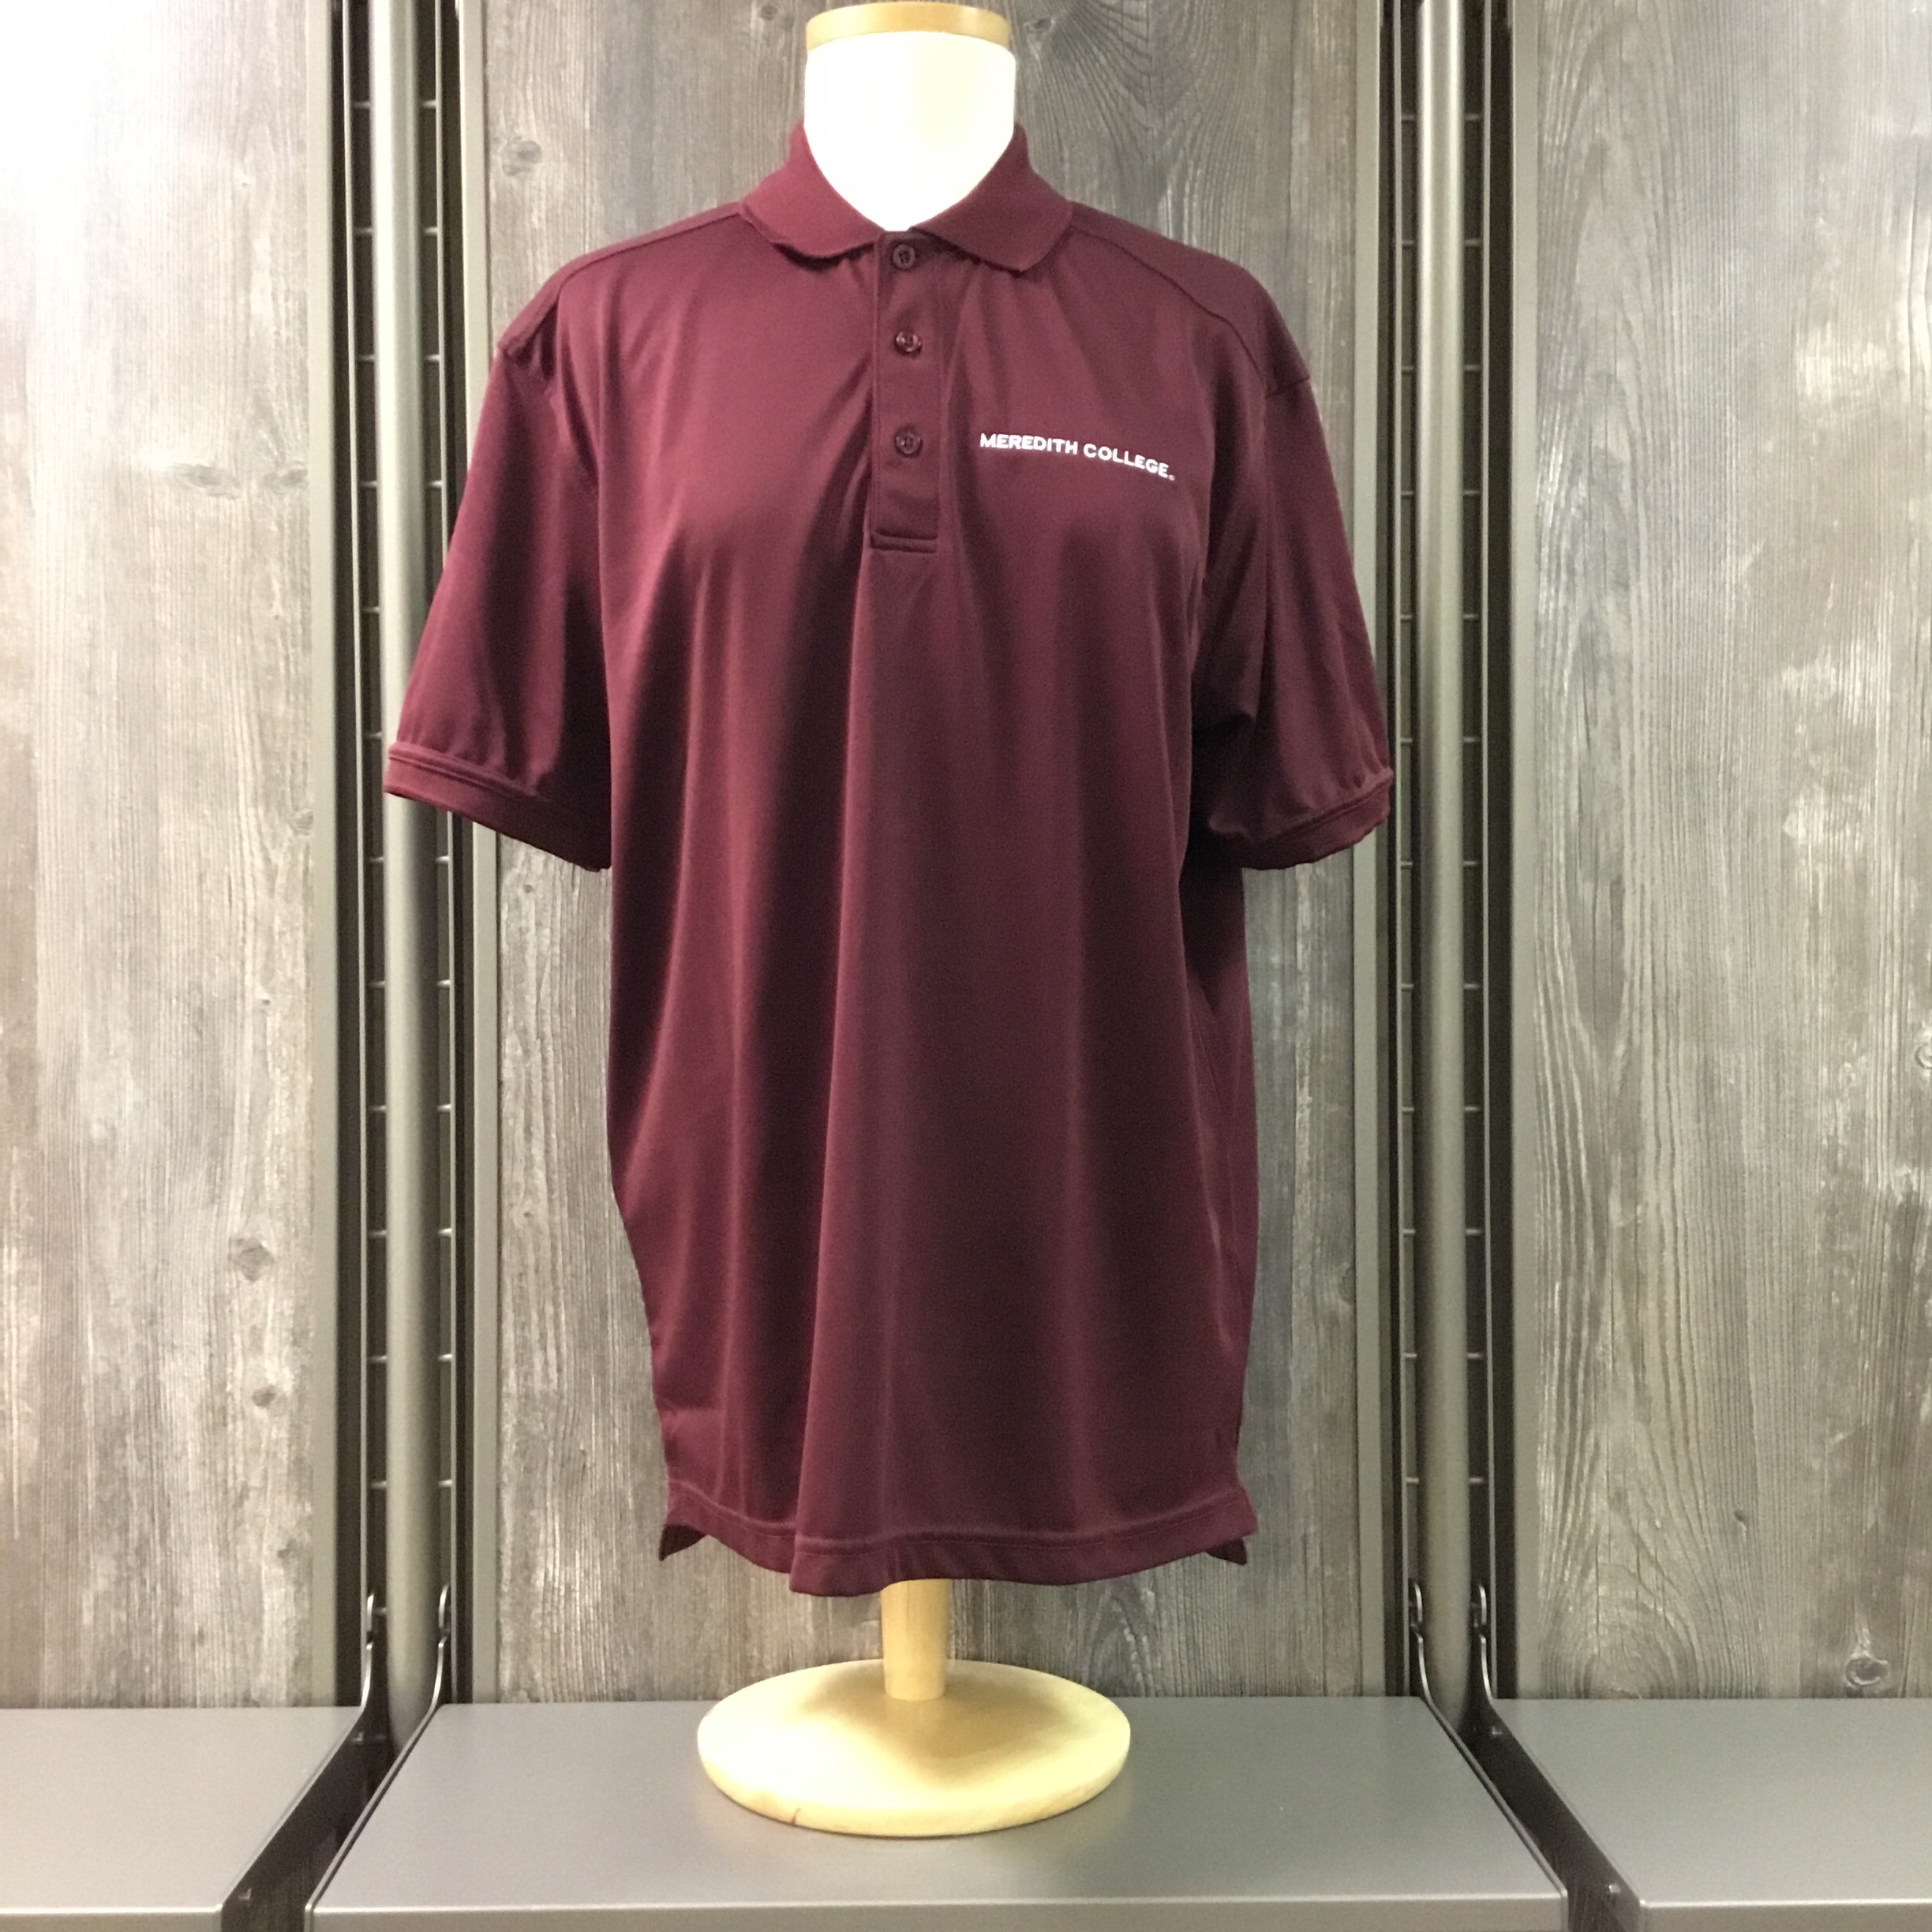 Image for the Men's Oslo Pique Polo Burgundy Cutter & Buck product